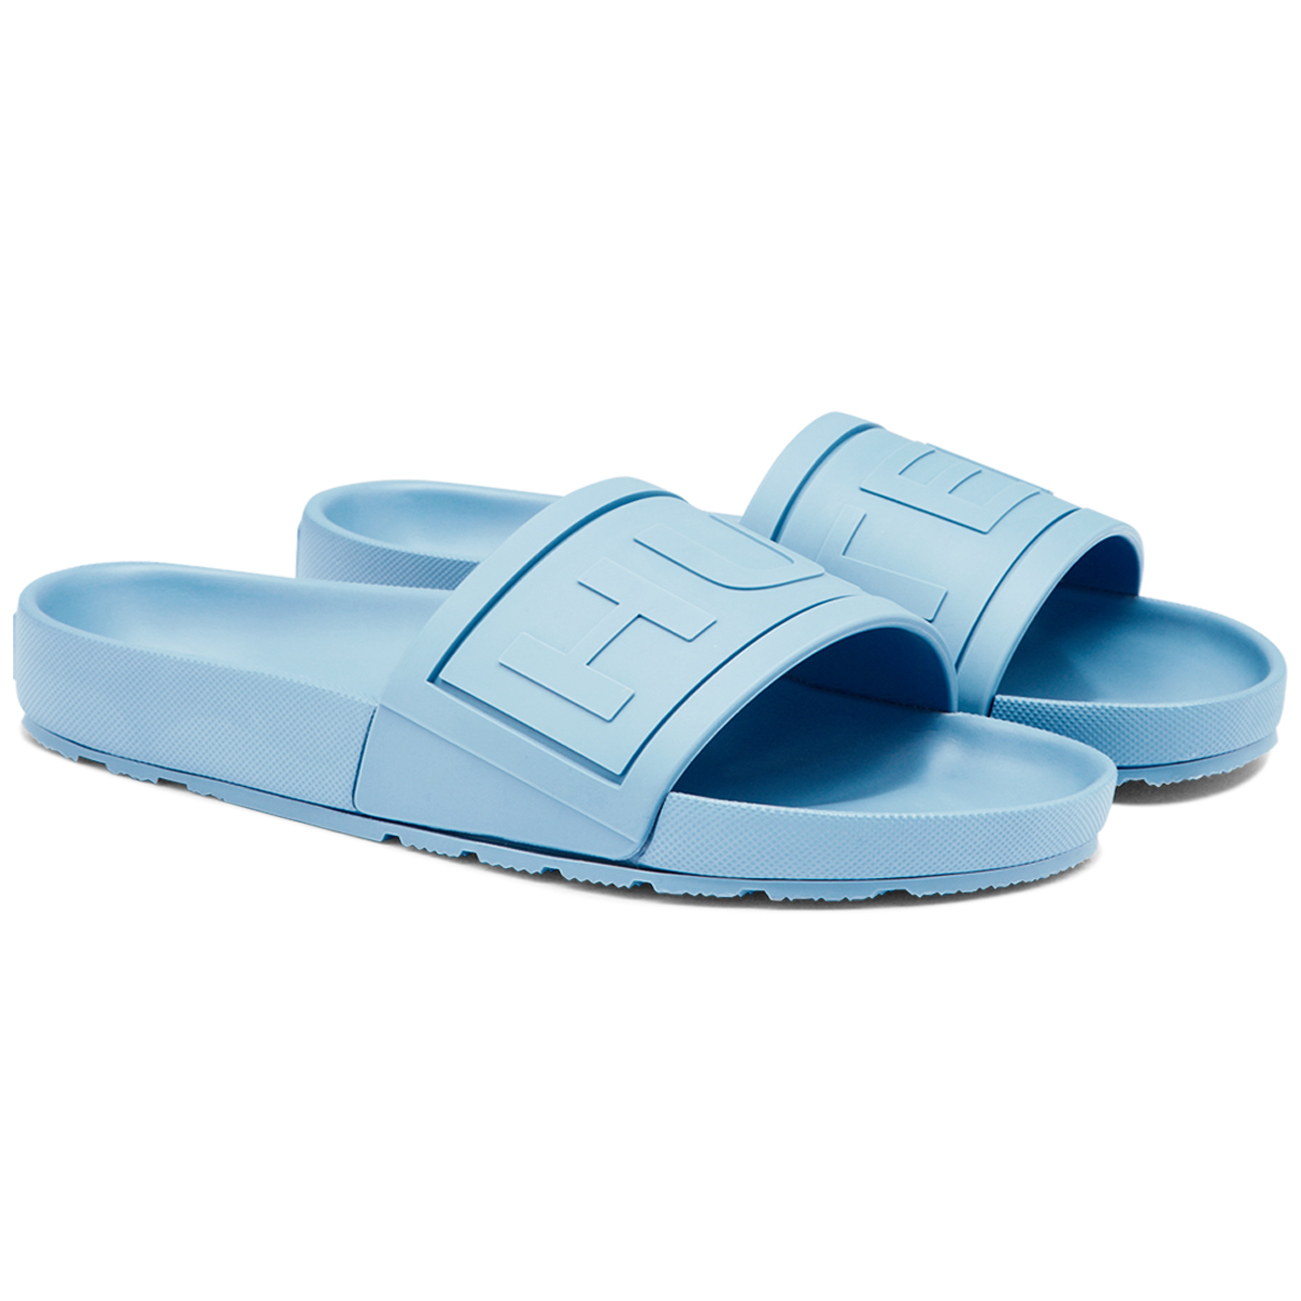 Pool Slides Shoes Uk